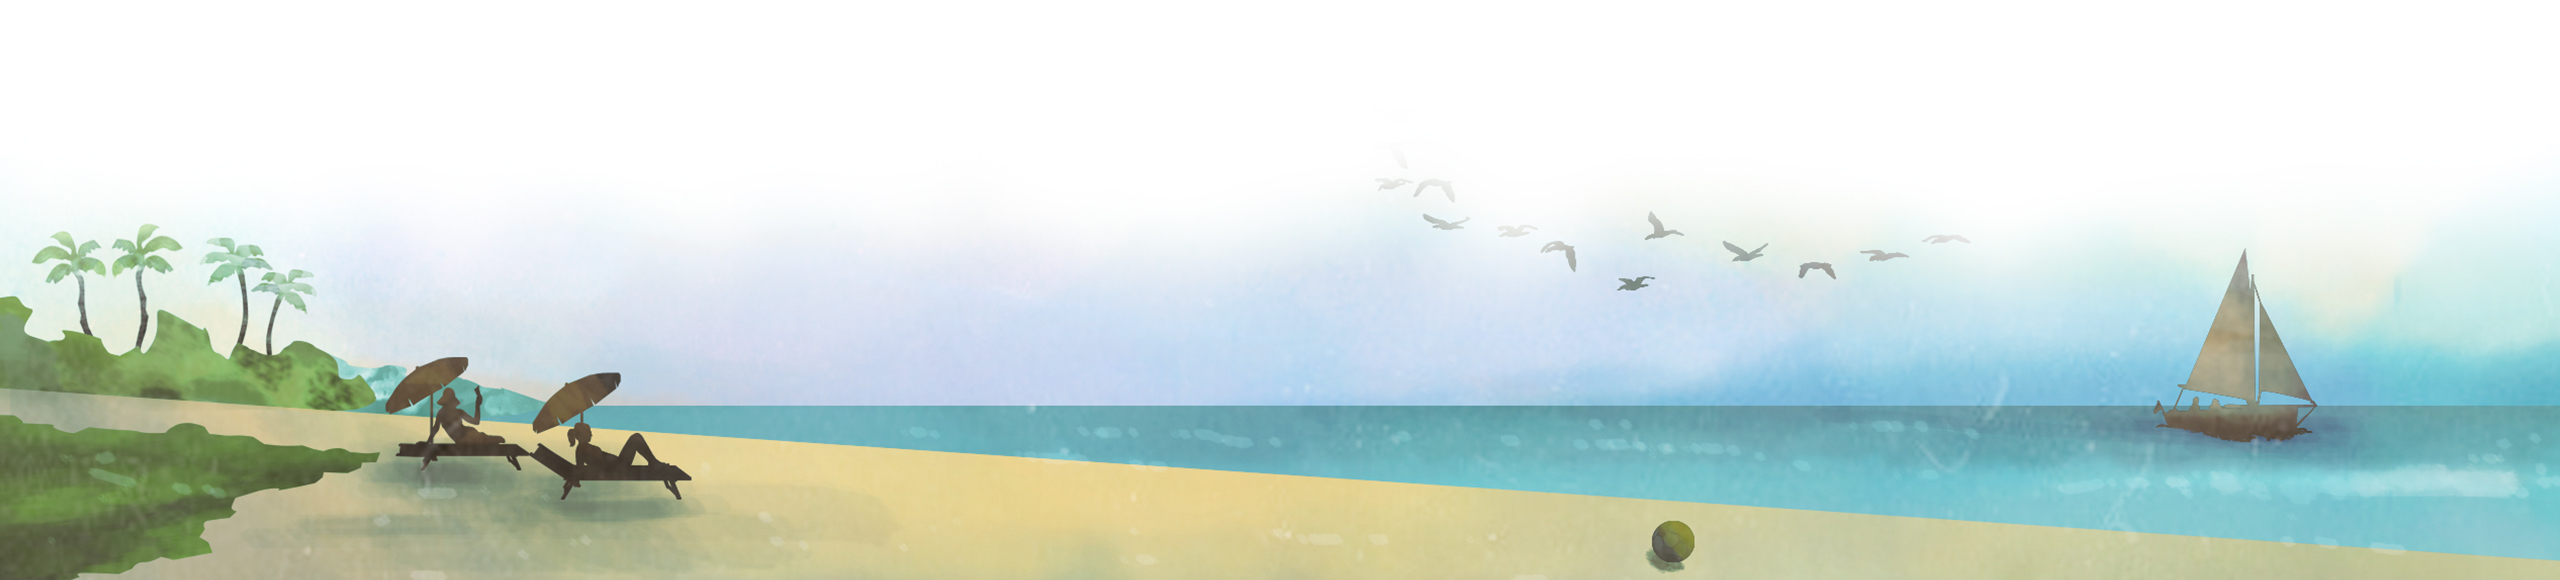 Sketch of the beach